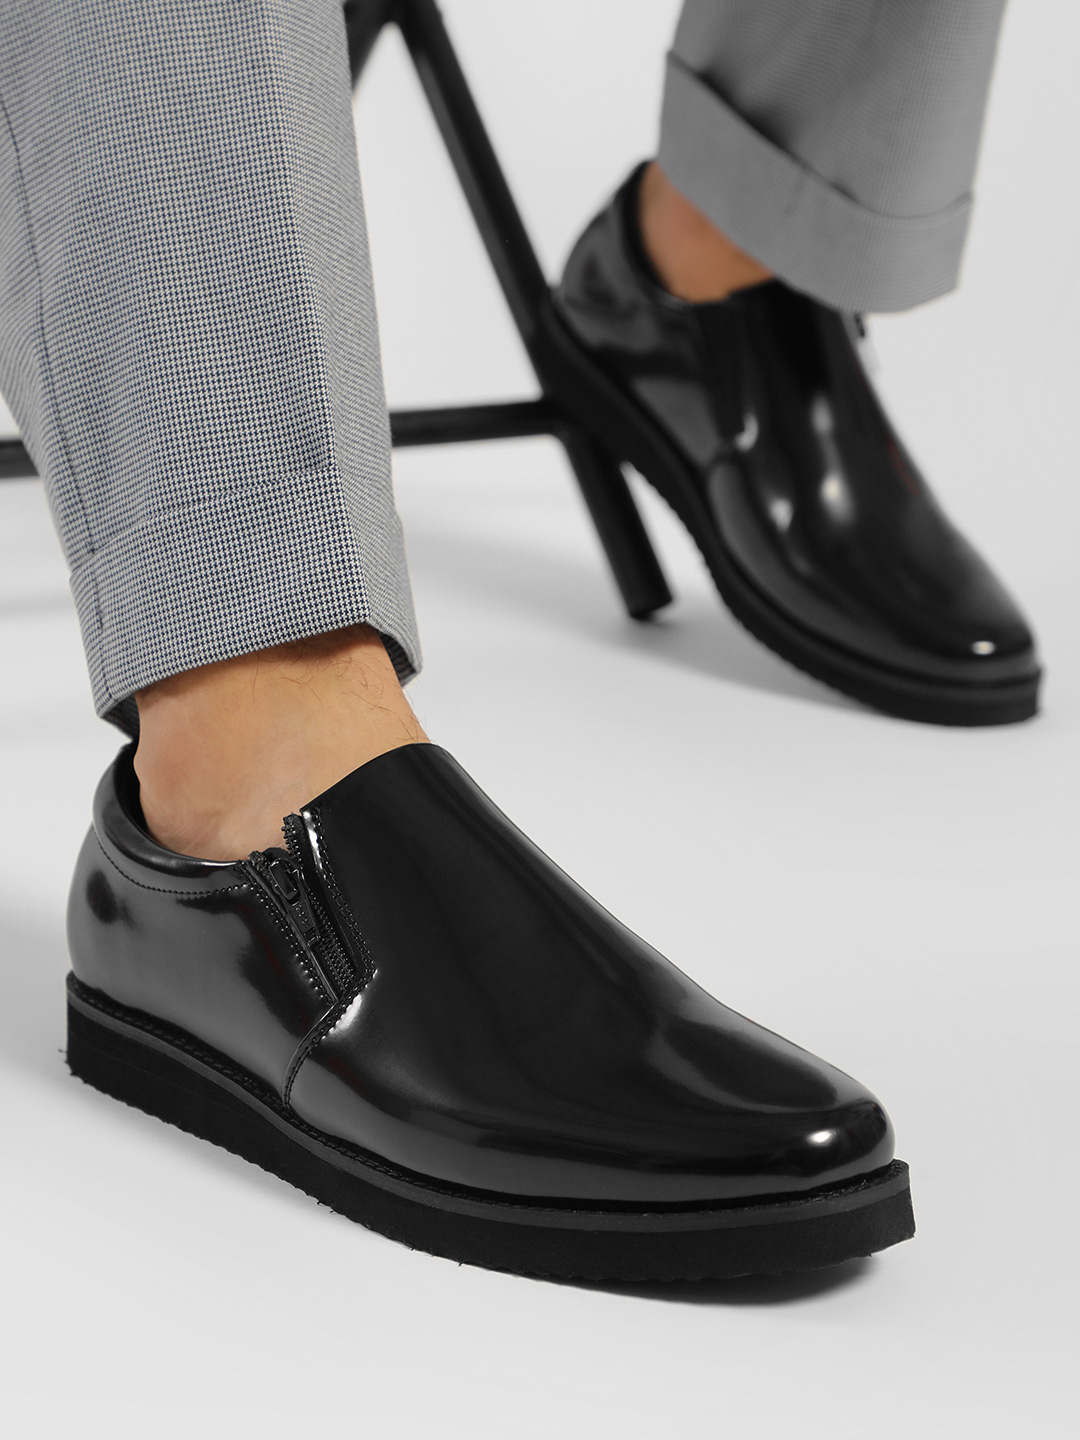 Griffin Black Patent Slip-On Shoes 1